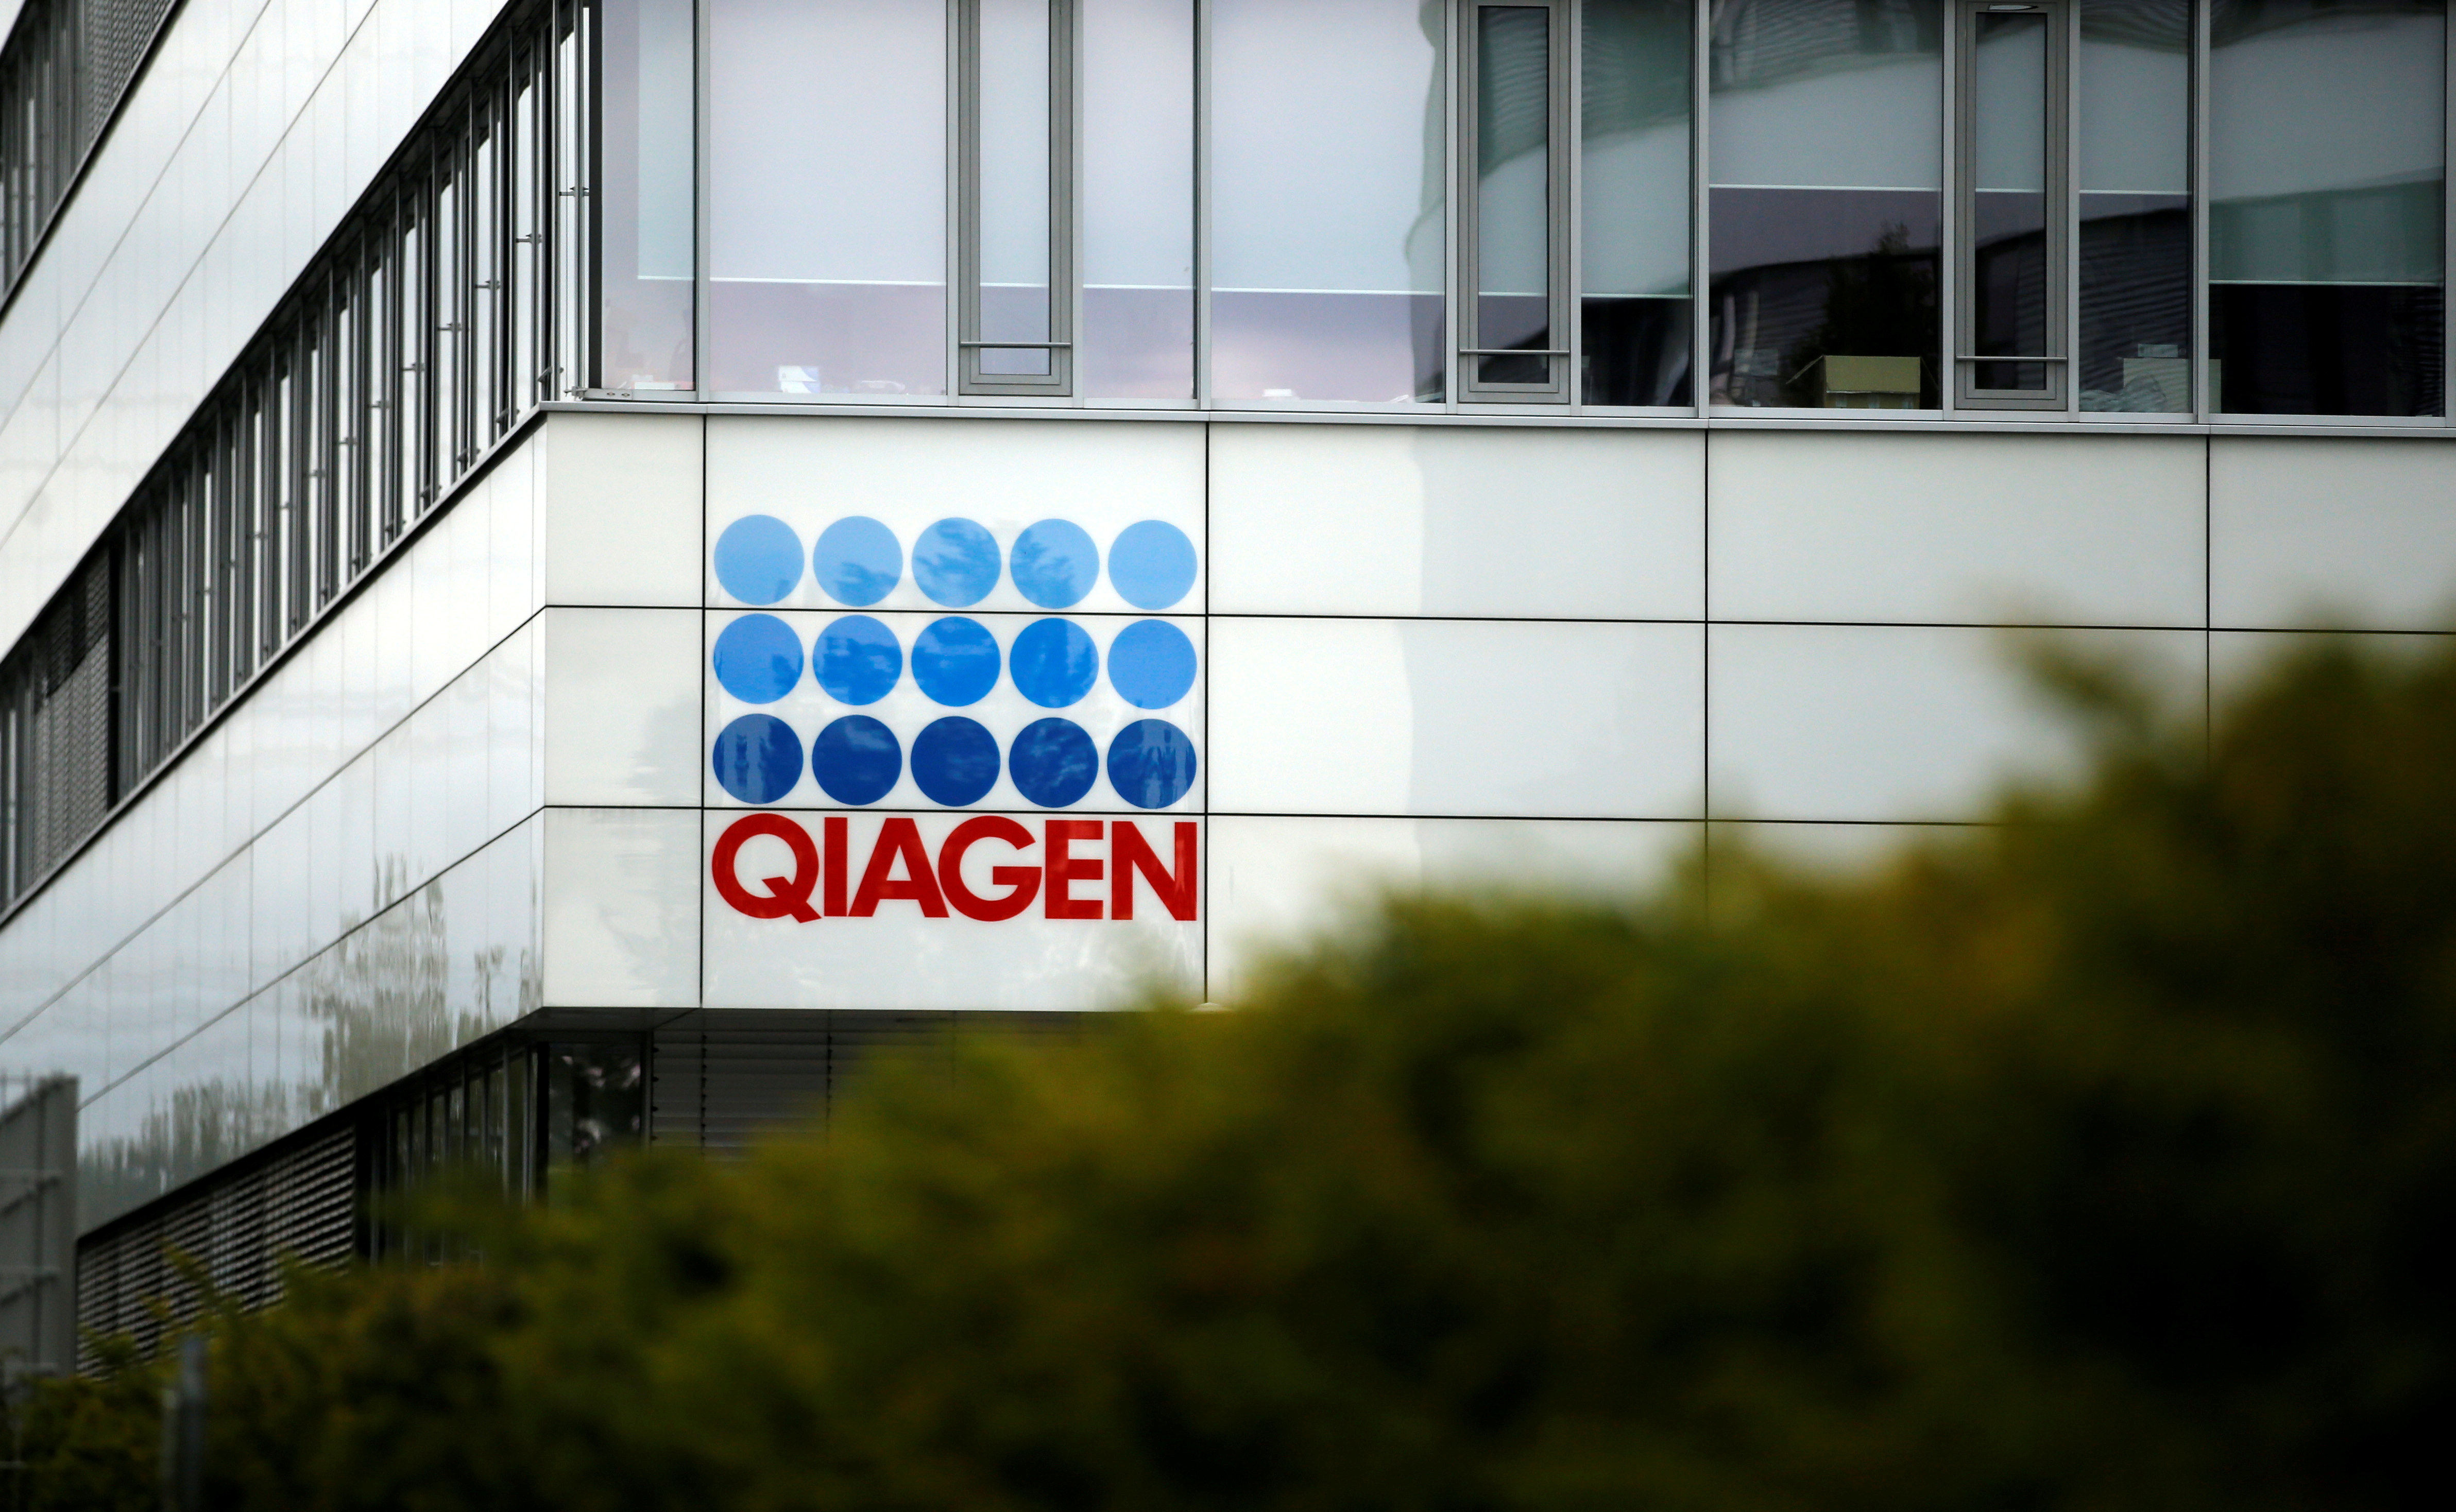 A logo of a testing company Qiagen is seen at its facility, in Hilden, Germany, September 8, 2020. REUTERS/Leon Kuegeler